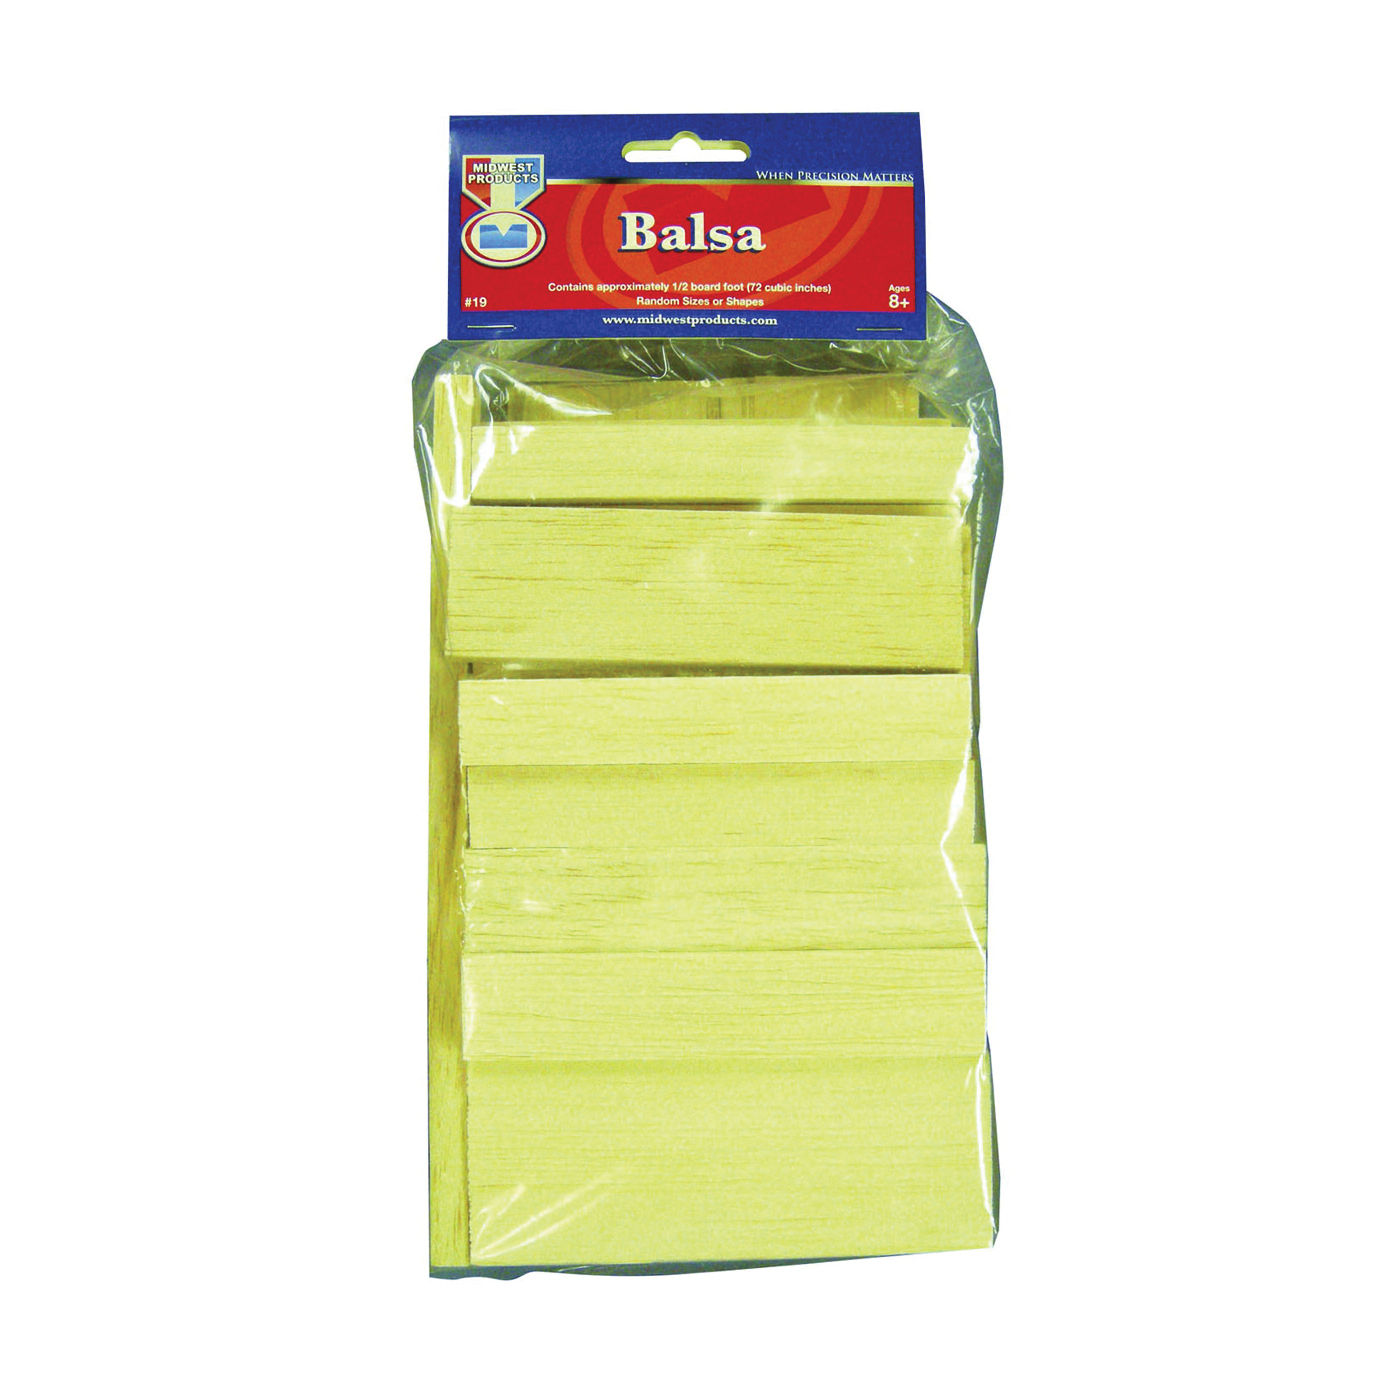 Picture of MIDWEST PRODUCTS 19 Craft Wood, Balsa